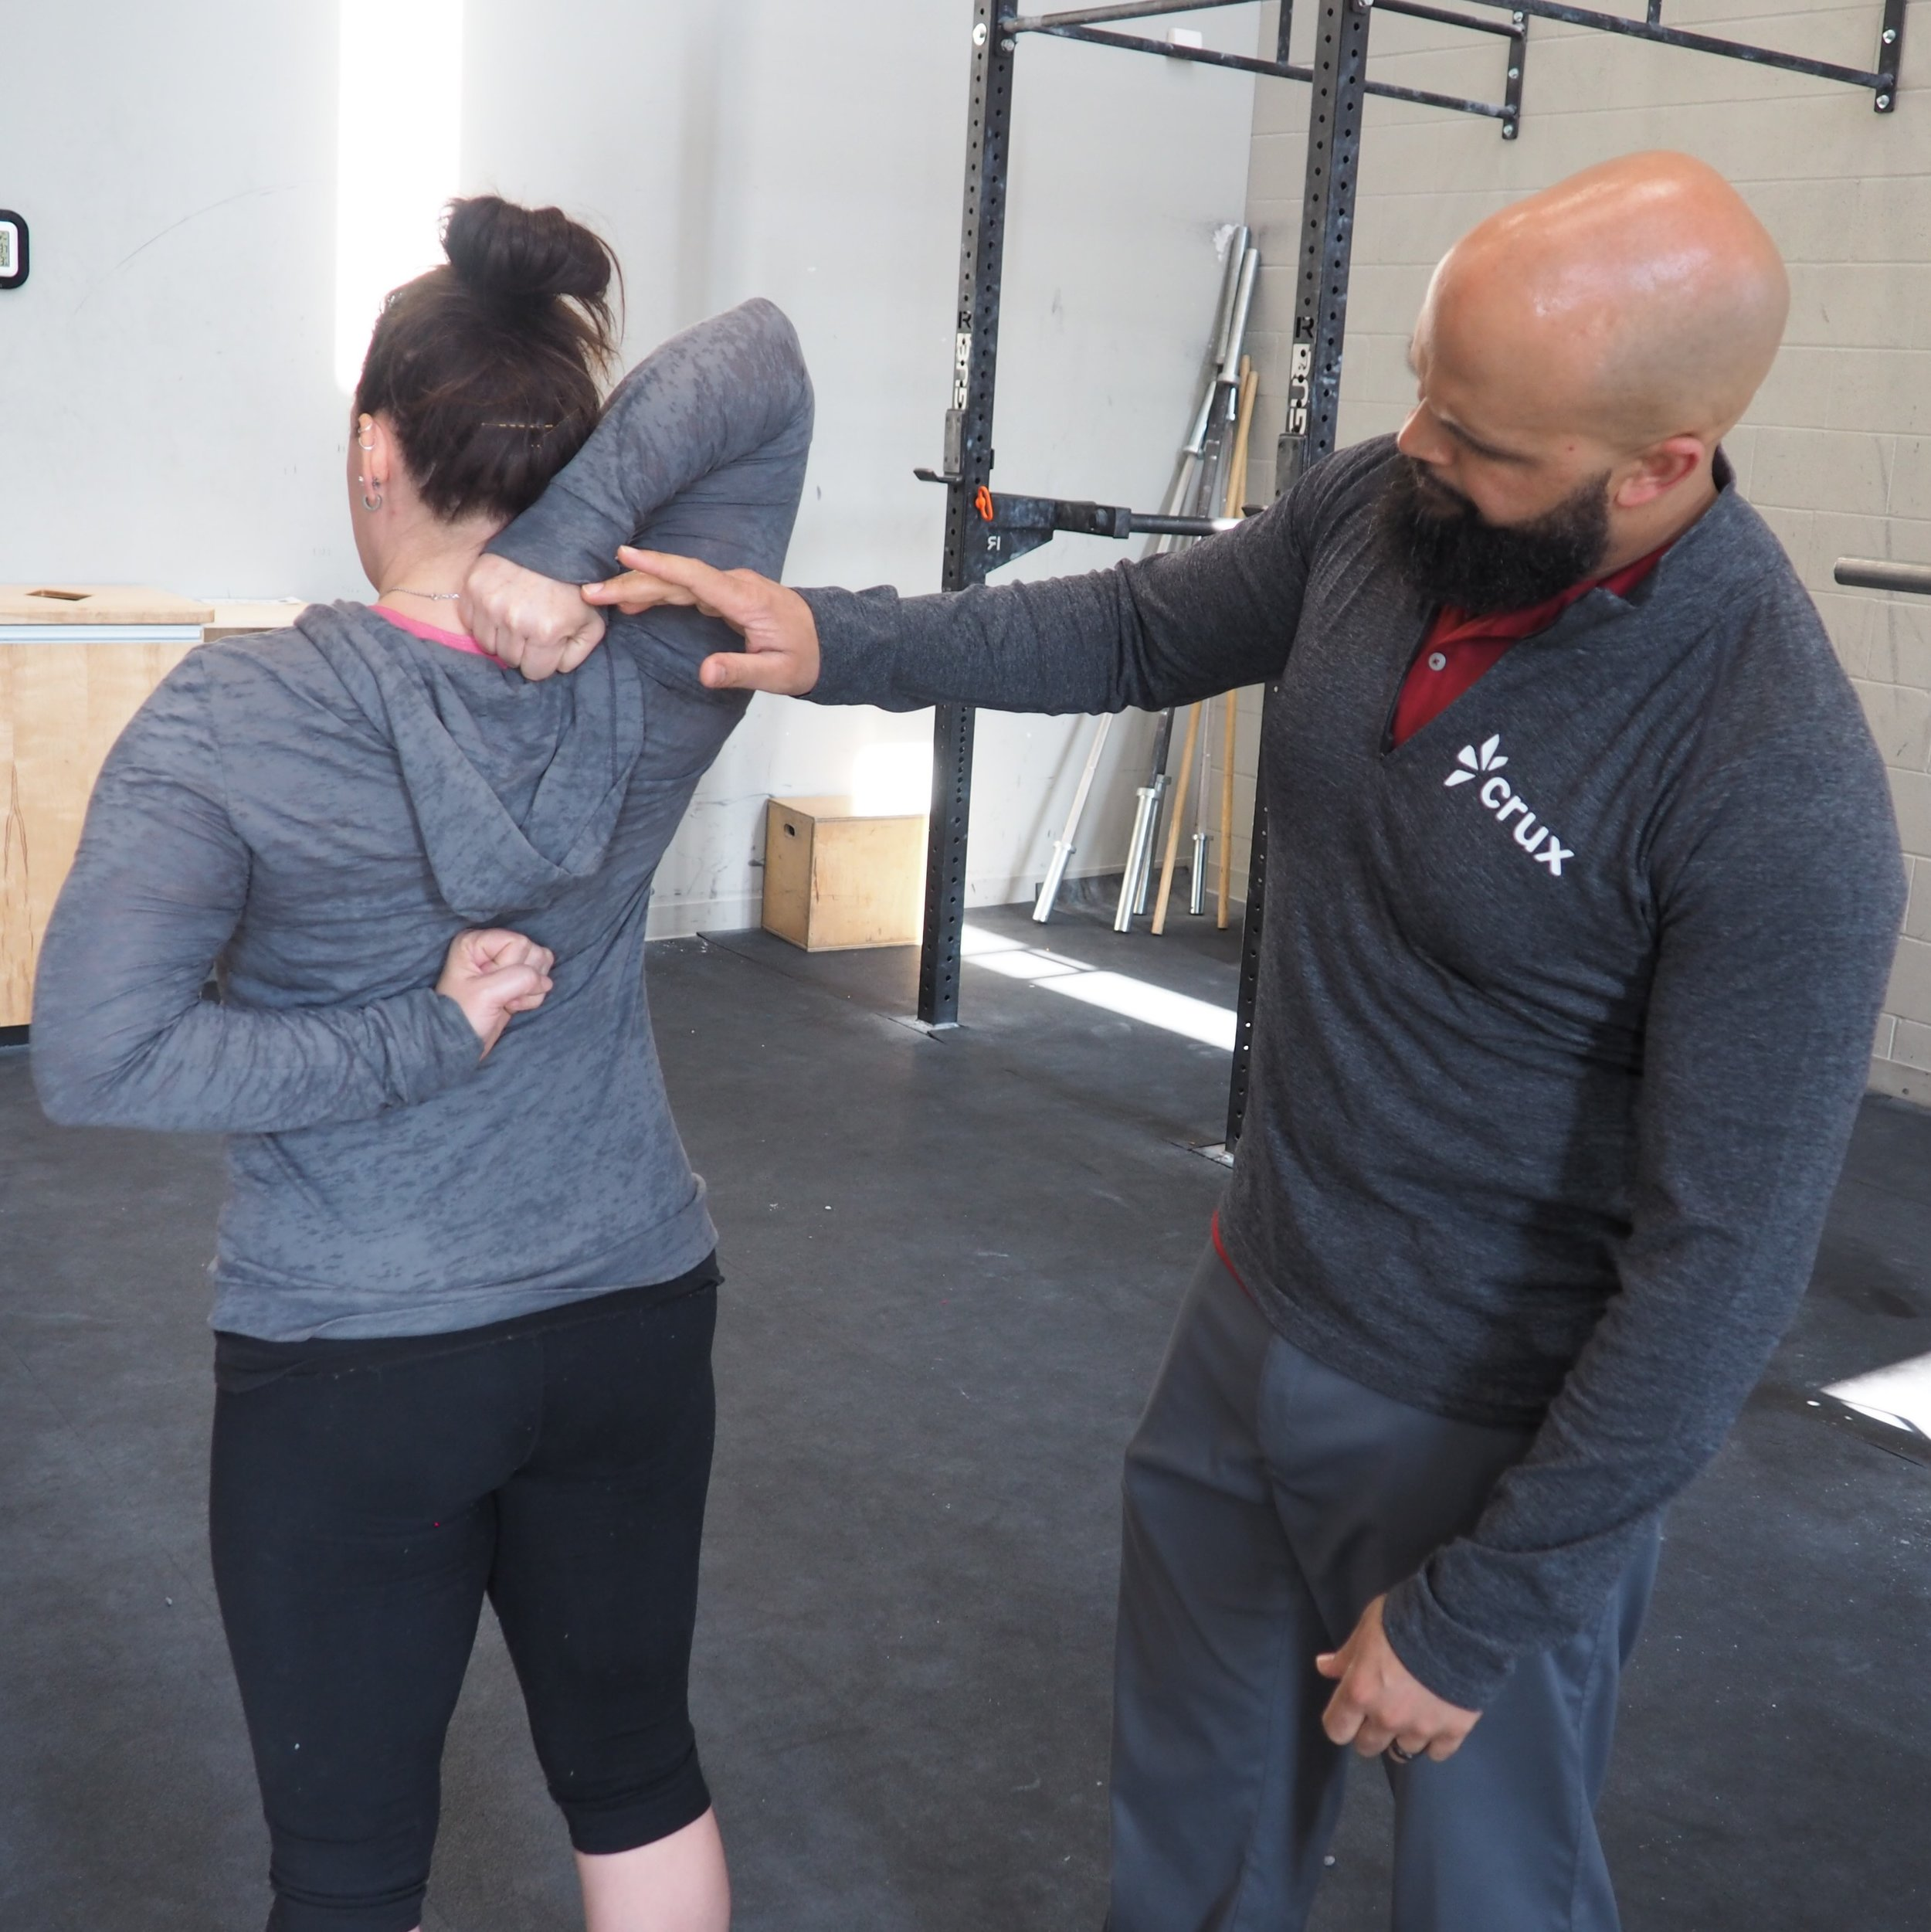 Movement Assessment - A thorough evaluation will allow us to uncover the weakest links in the chain which are causing your body to break down with pain or dysfunction.